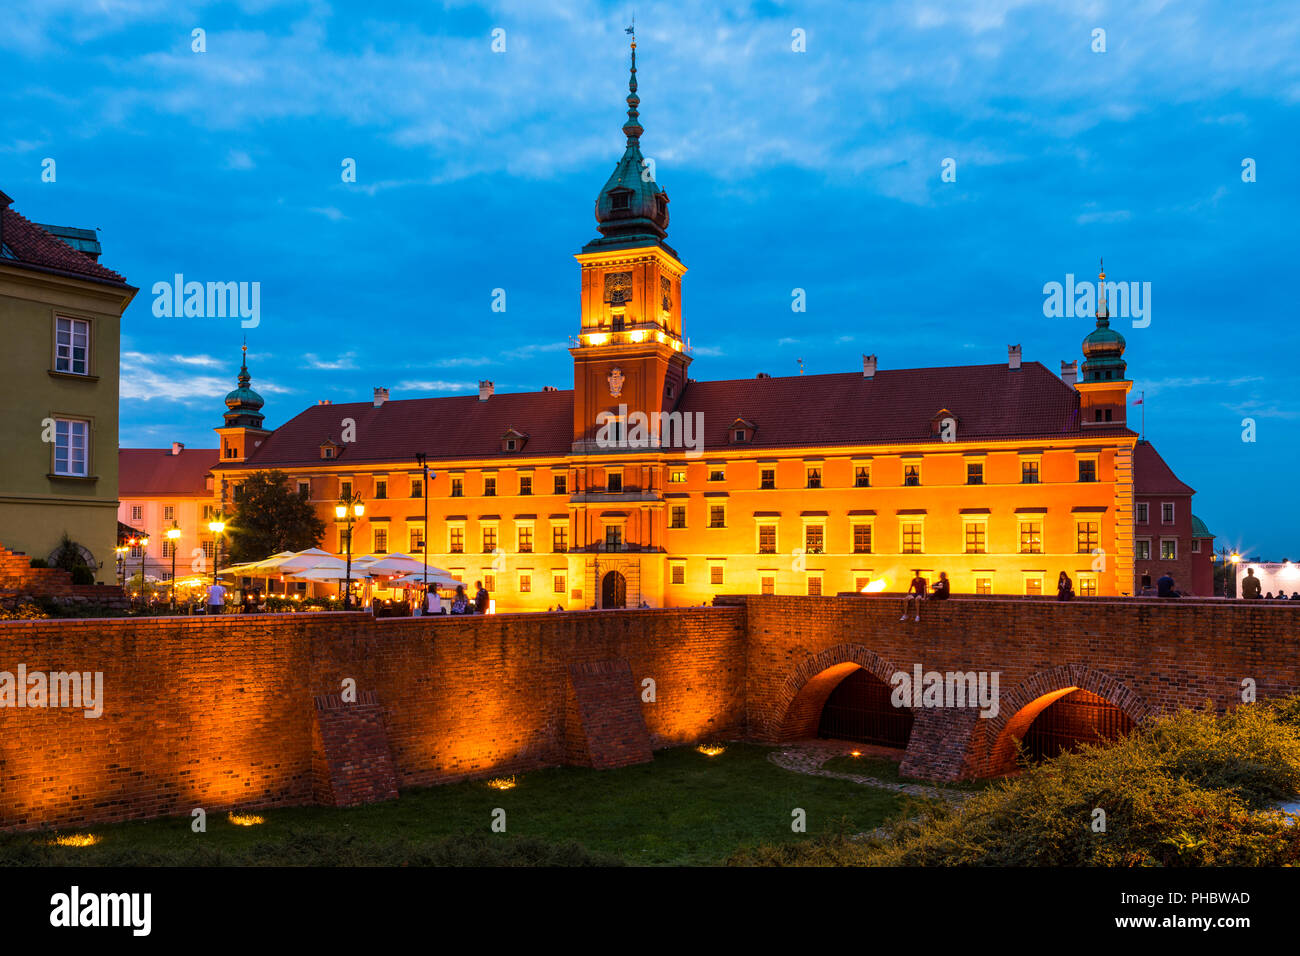 Royal Castle in Plac Zamkowy (Castle Square) at night, Old Town, UNESCO World Heritage Site, Warsaw, Poland, Europe - Stock Image